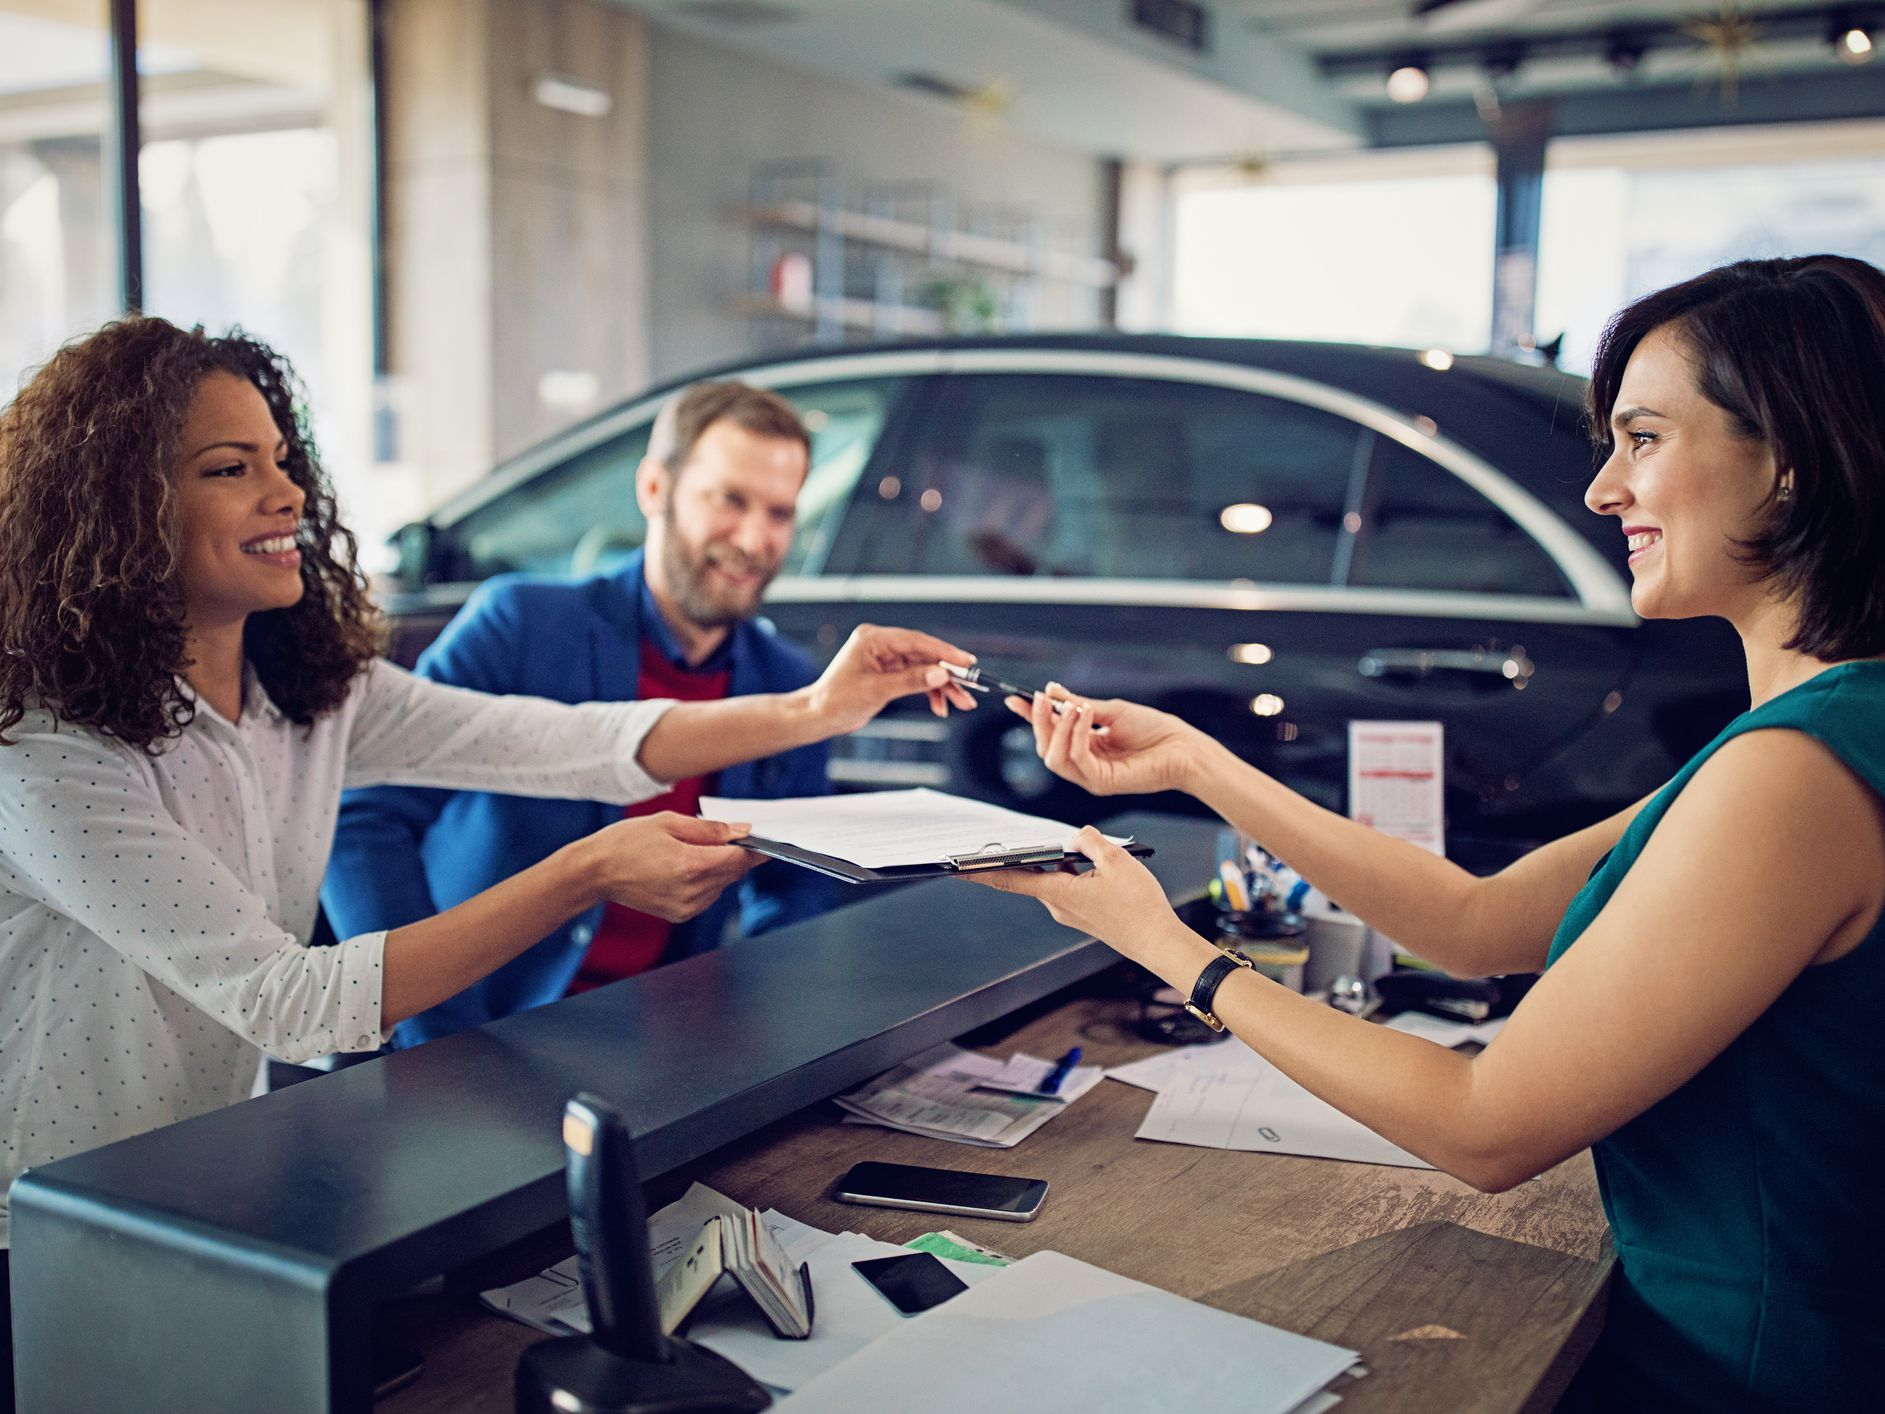 Image result for Leasing A Vehicle What Are The Advantages And The Disadvantages